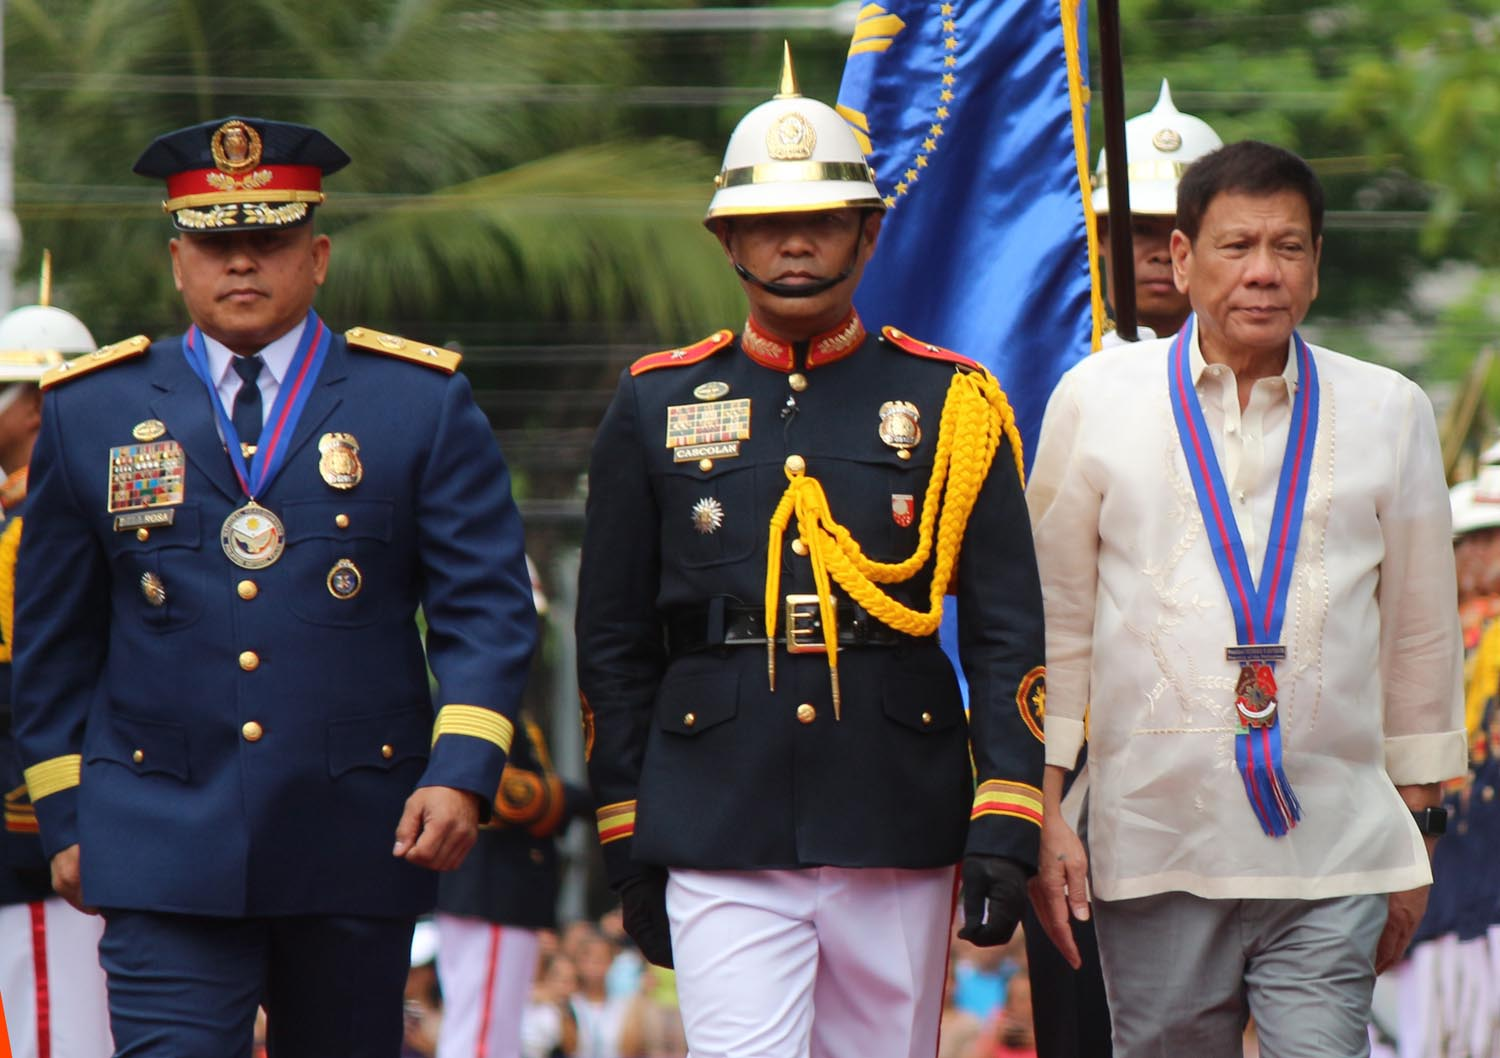 NEW BOSS. President Duterte with new PNP chief Ronald dela Rosa during turnover rites on July 1, 2016. Photo by Joel Liporada/Rappler